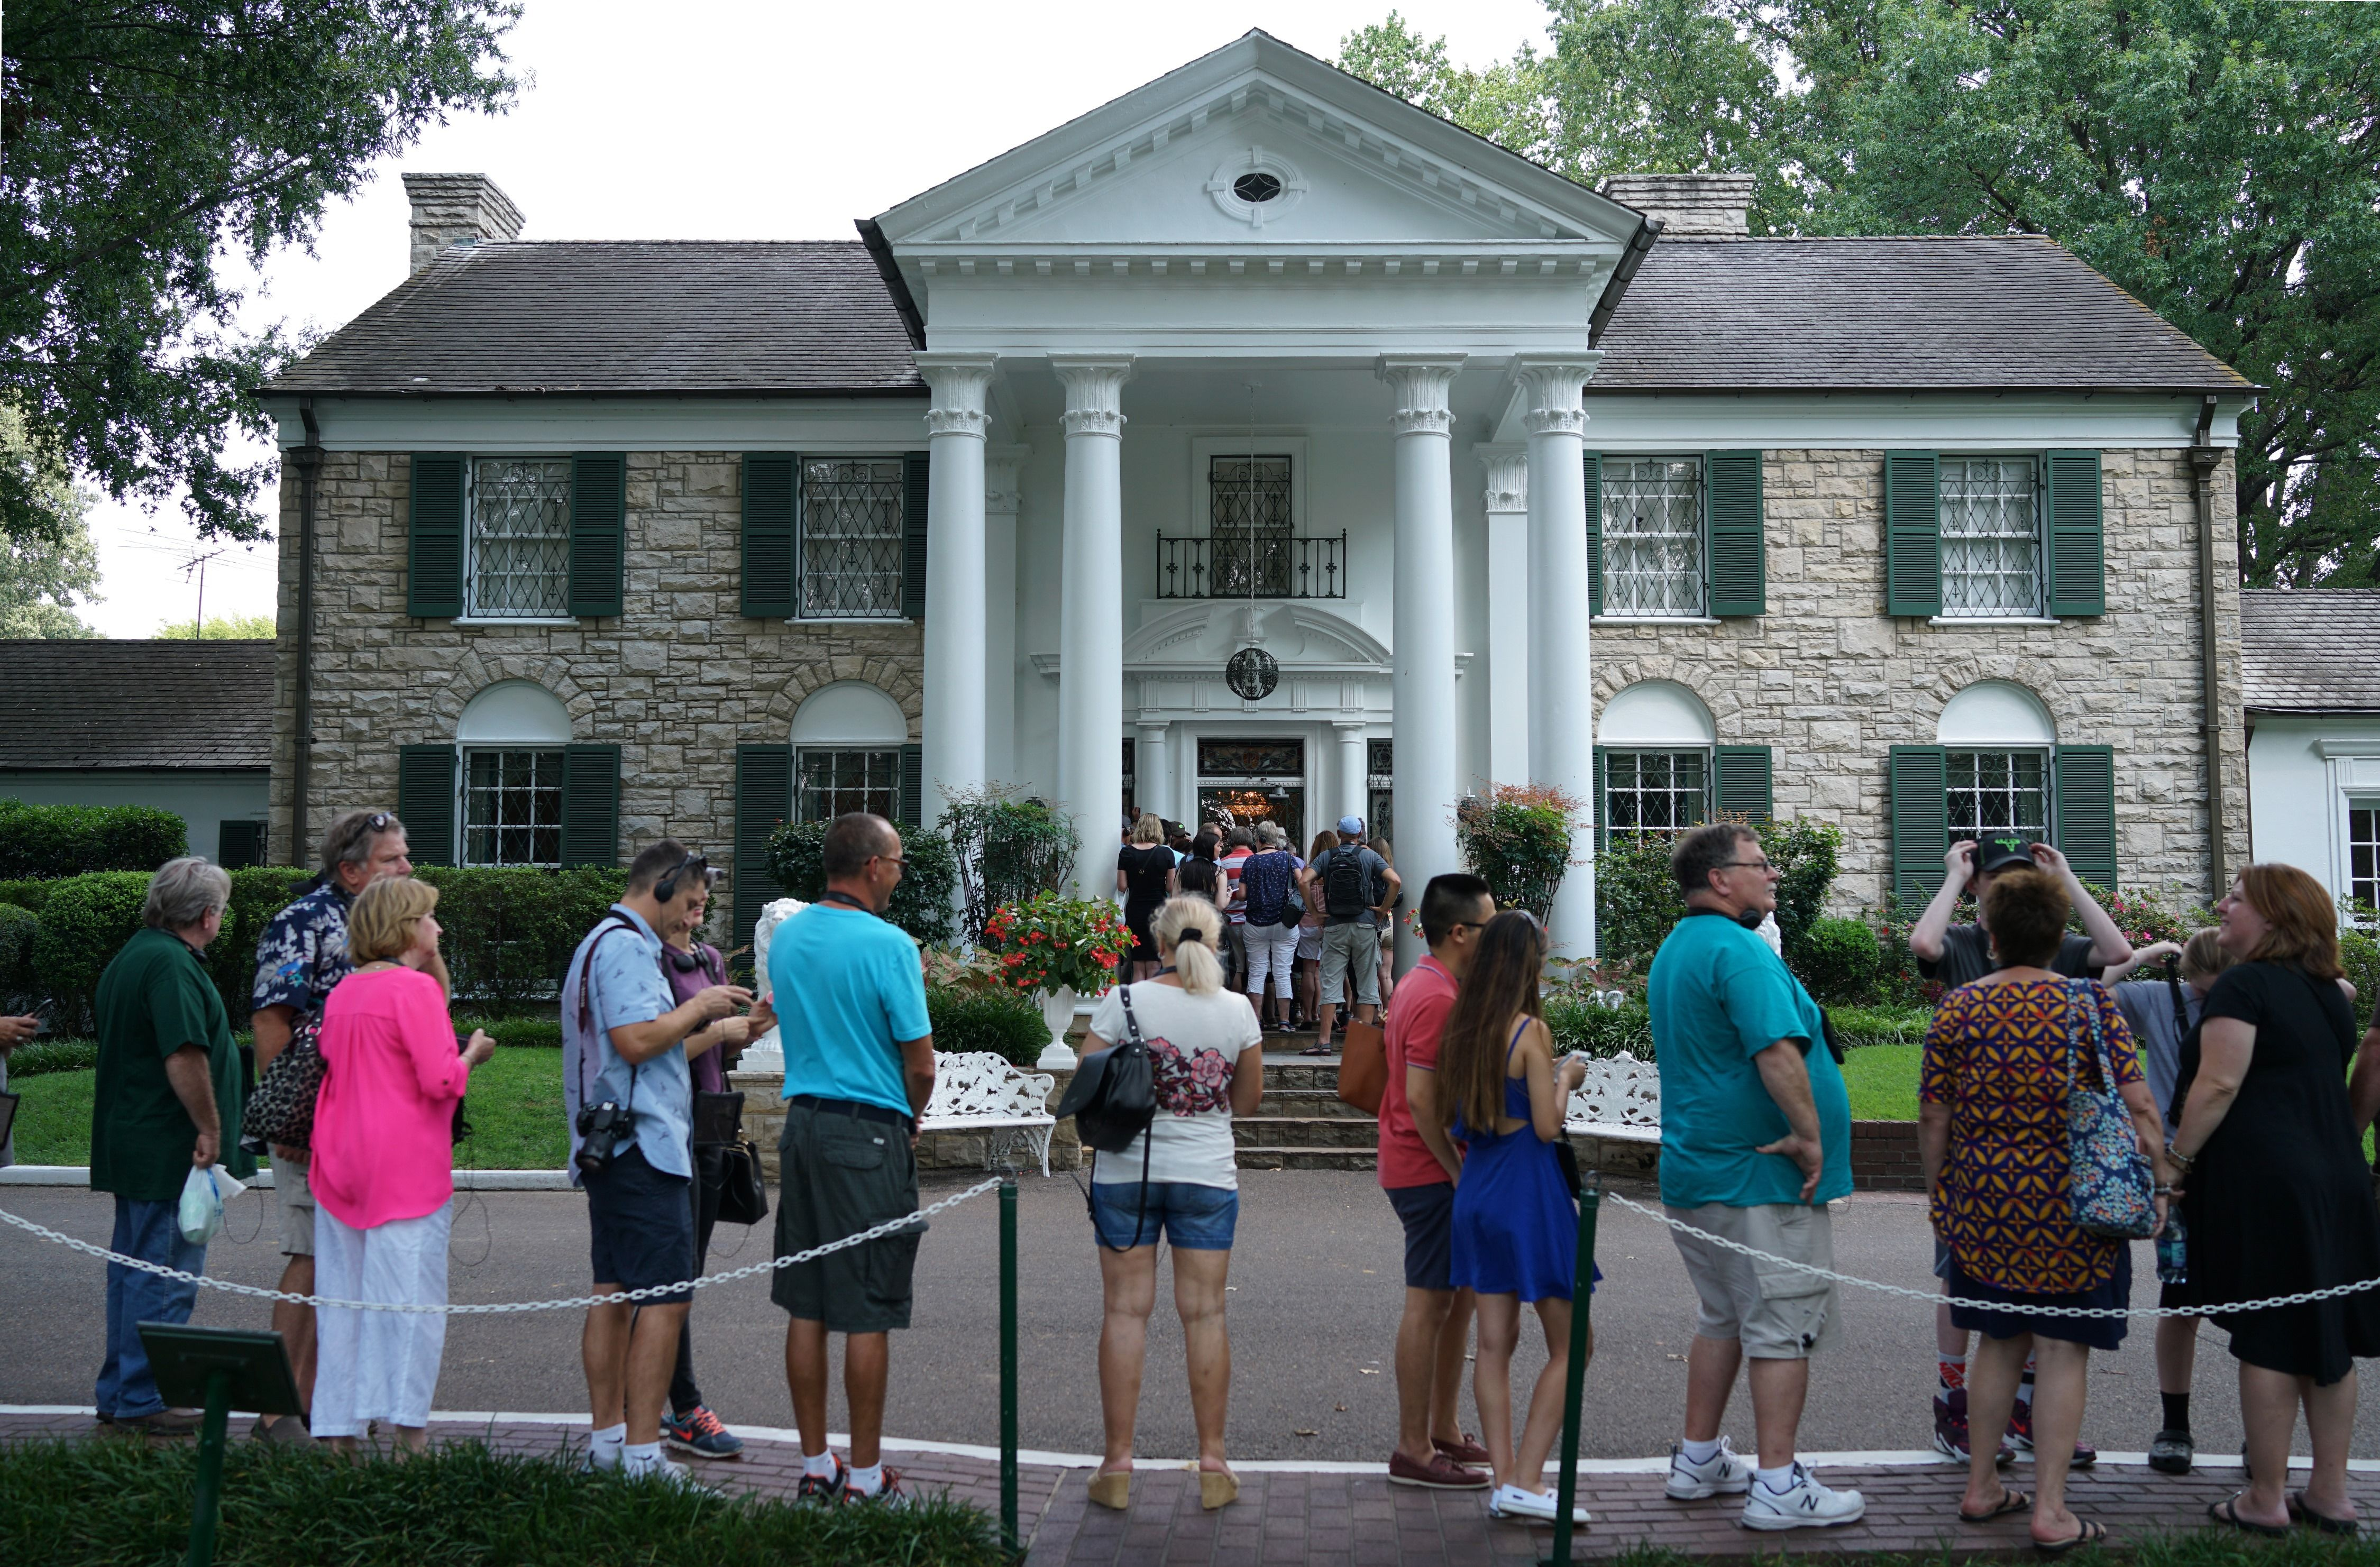 This is Graceland, where a fat dude died on a toilet.